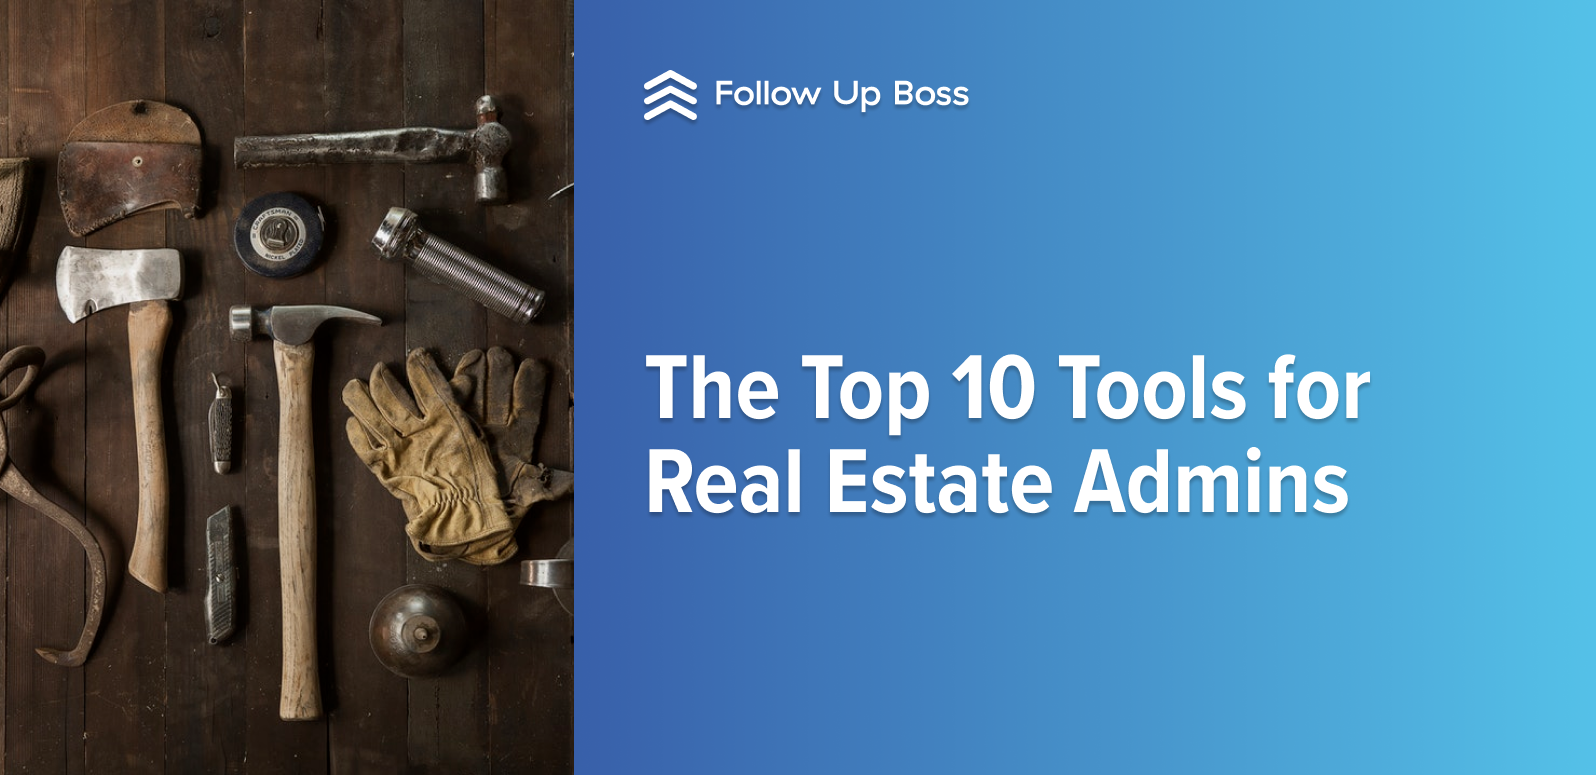 The Top 10 Tools for Real Estate Admins